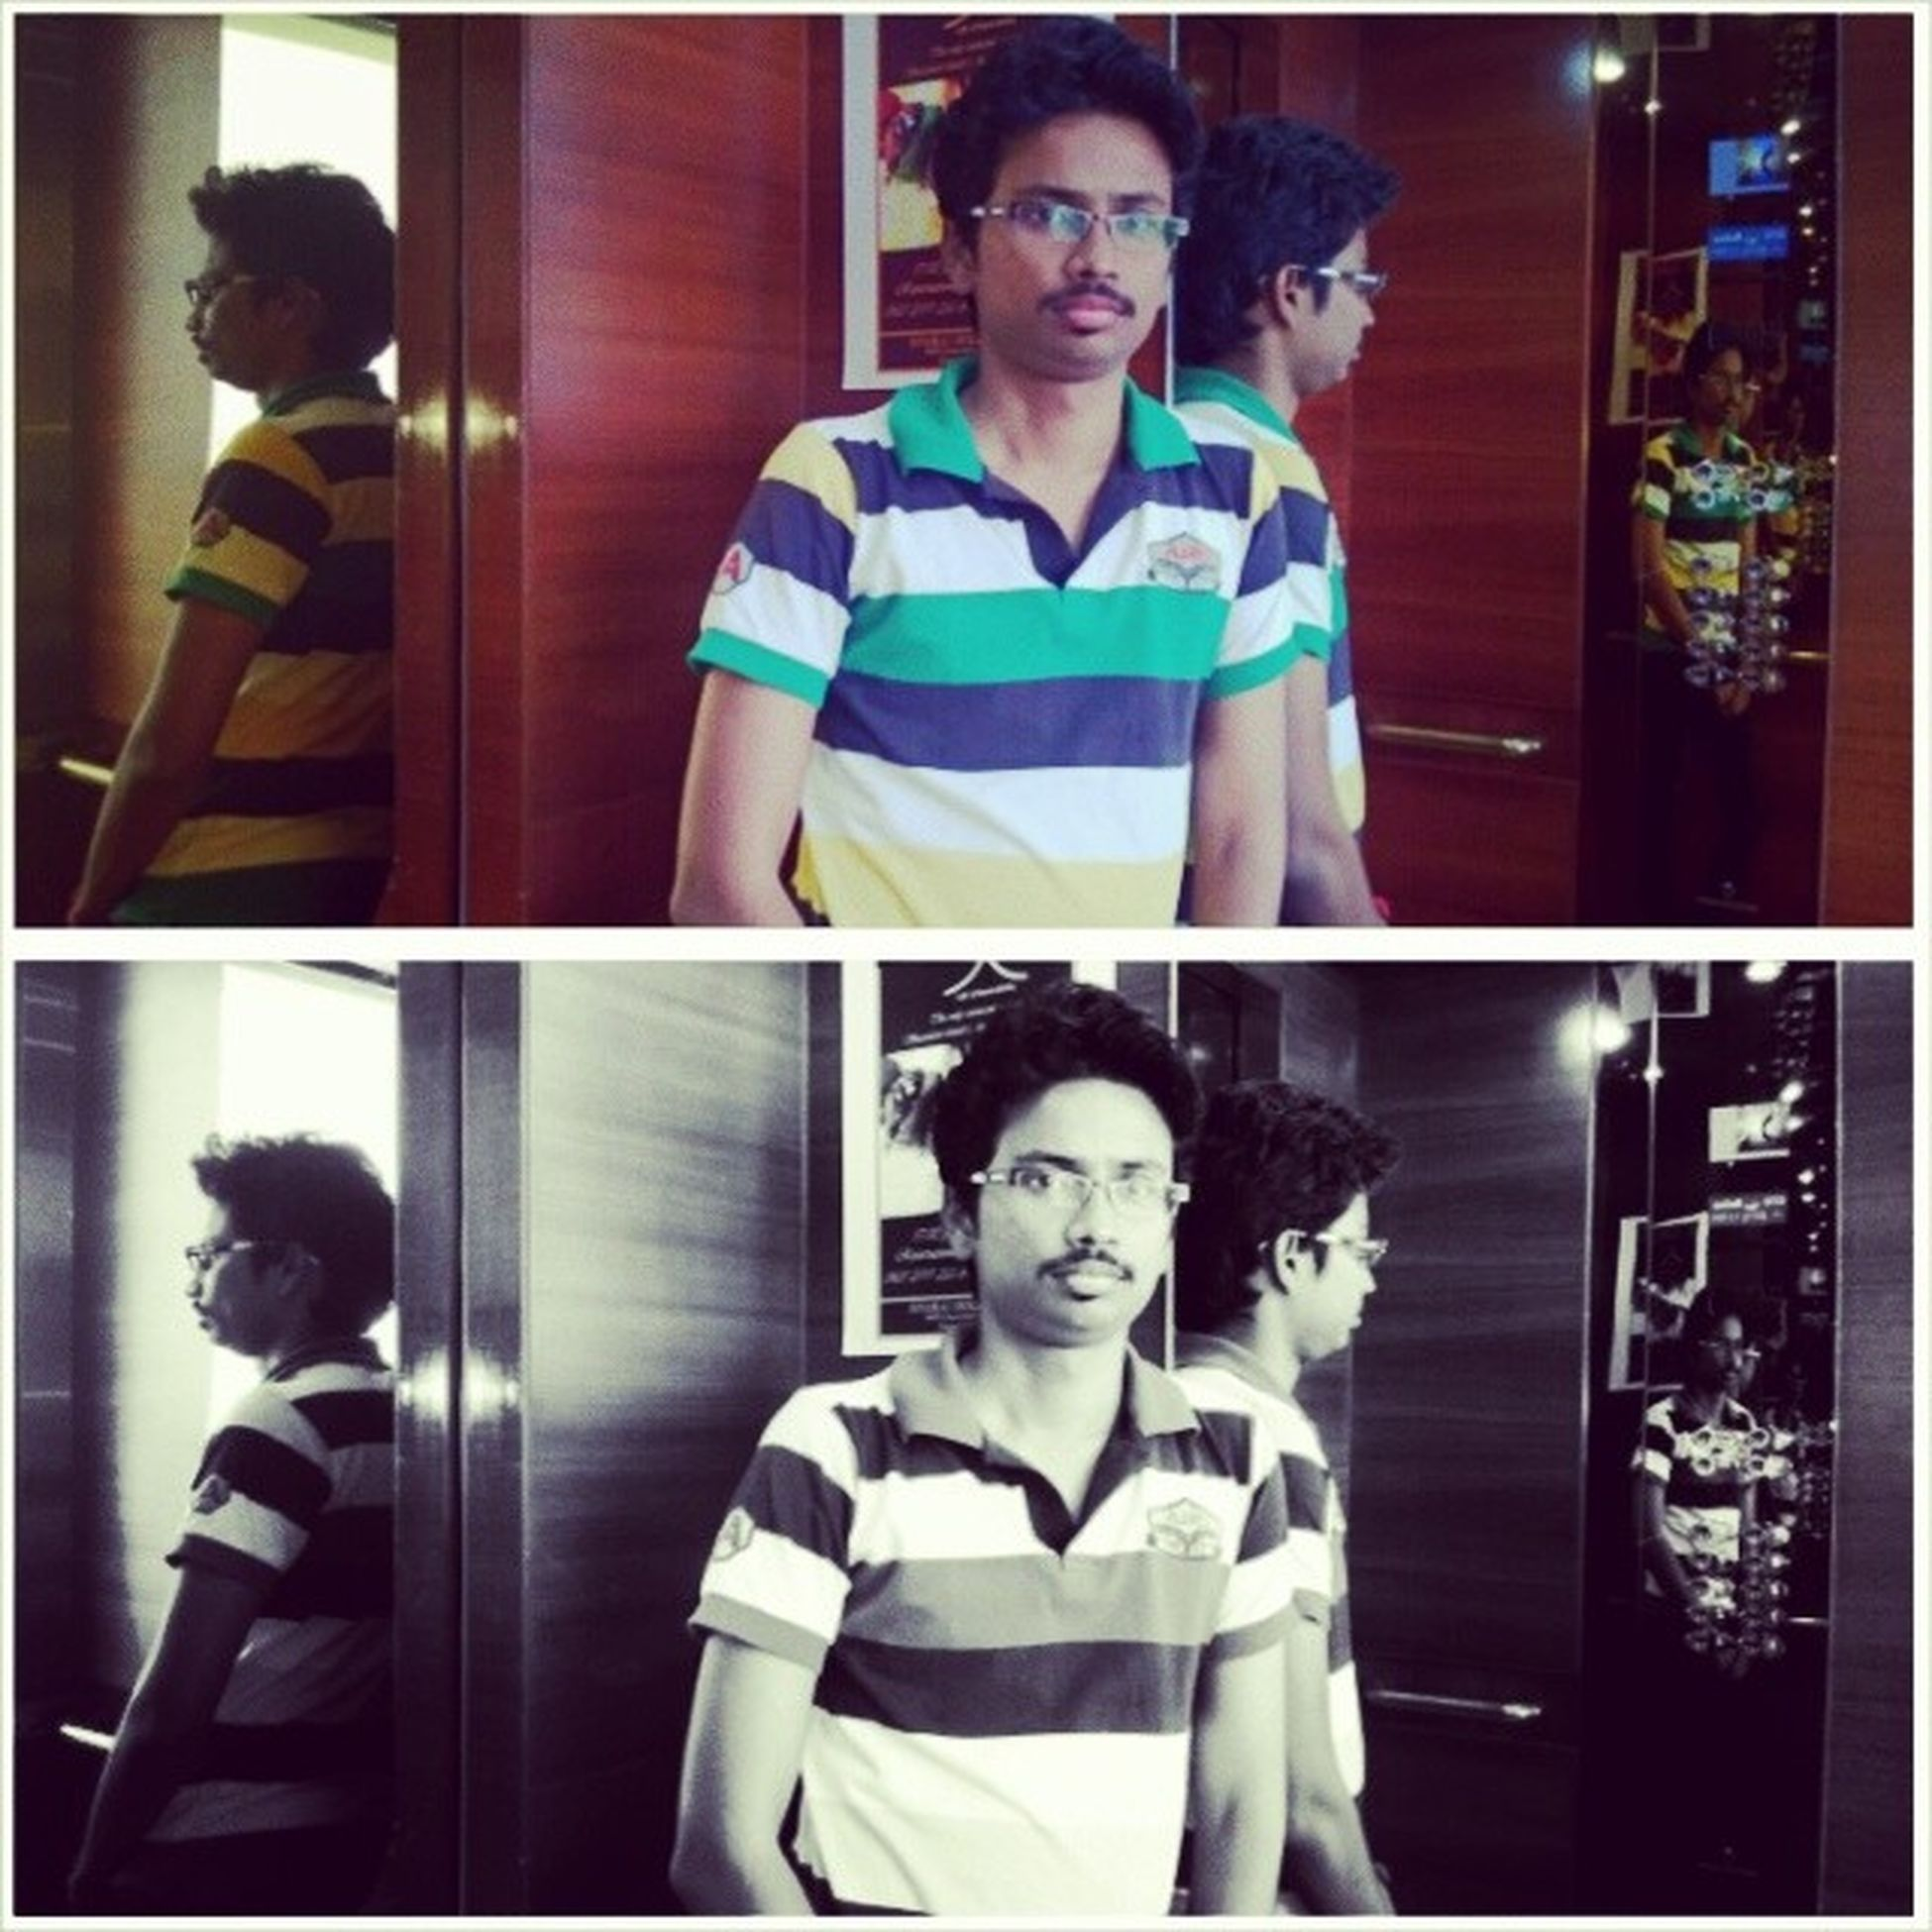 Posing Power_of_4 Photography Inside_lift tamilpaiyan picoftheday instapic tagforlikes followforfollow f4f